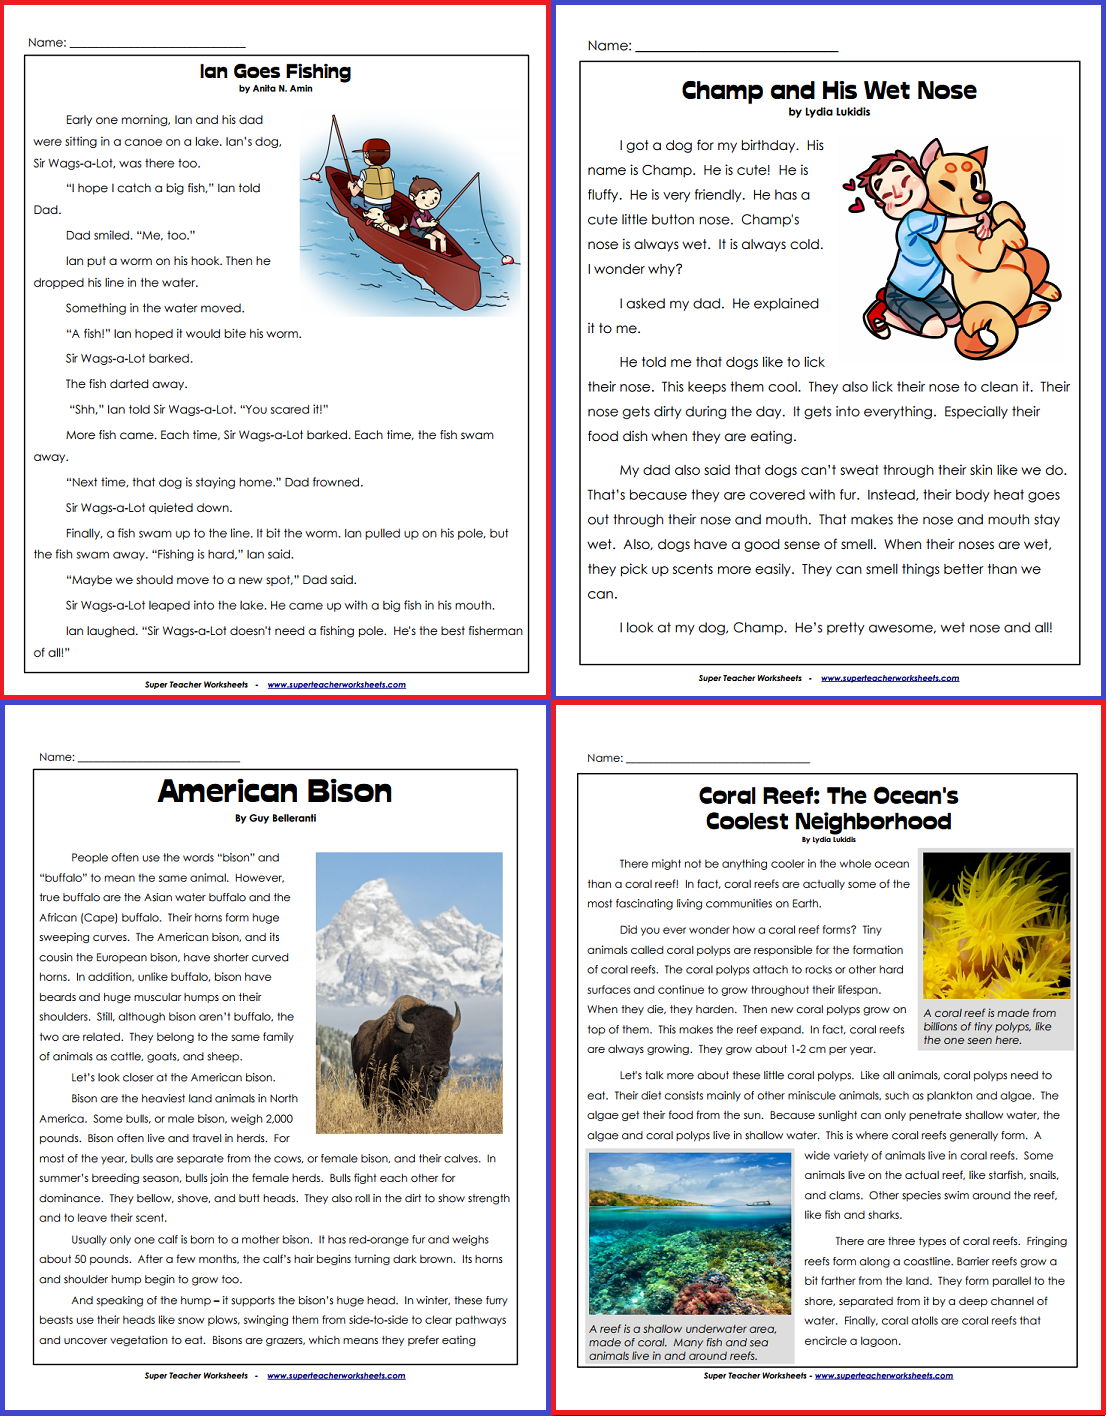 worksheet Fifth Grade Reading Comprehension Worksheets stw has a wonderful collection of reading comprehension articles for 1st through 5th grades including some middle school mate